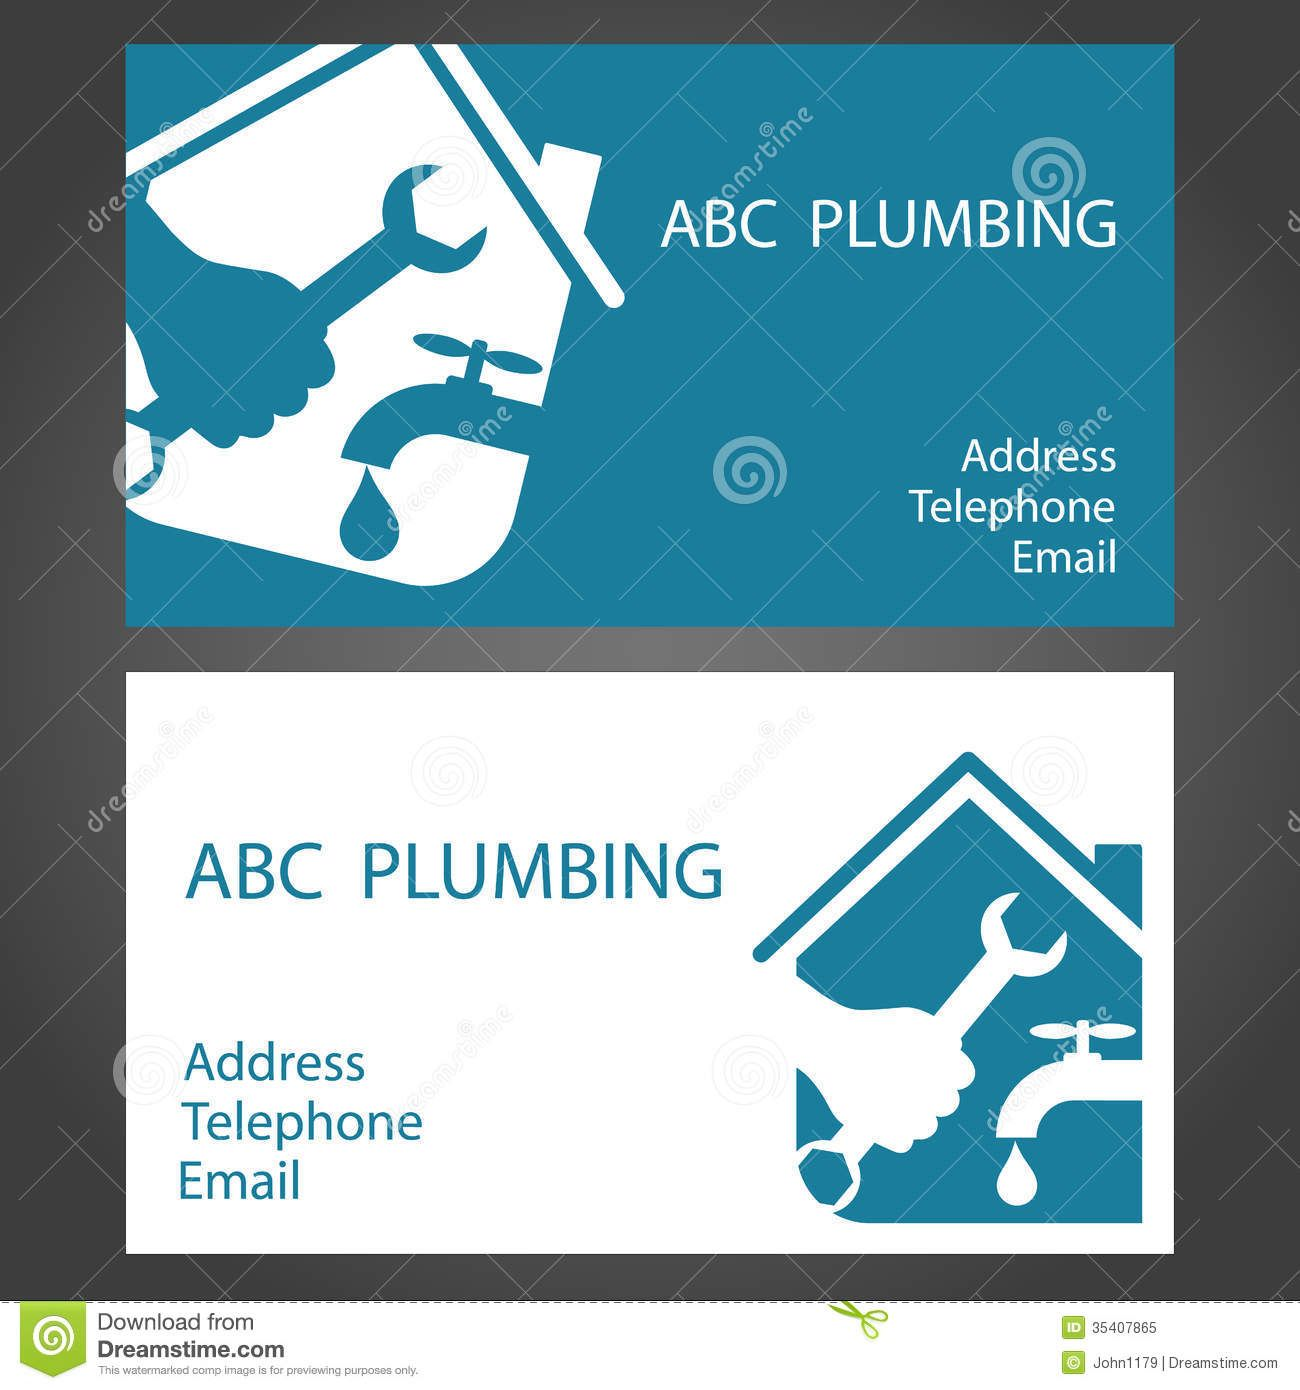 plumbers business cards - Google Search   plumbing   Pinterest ...